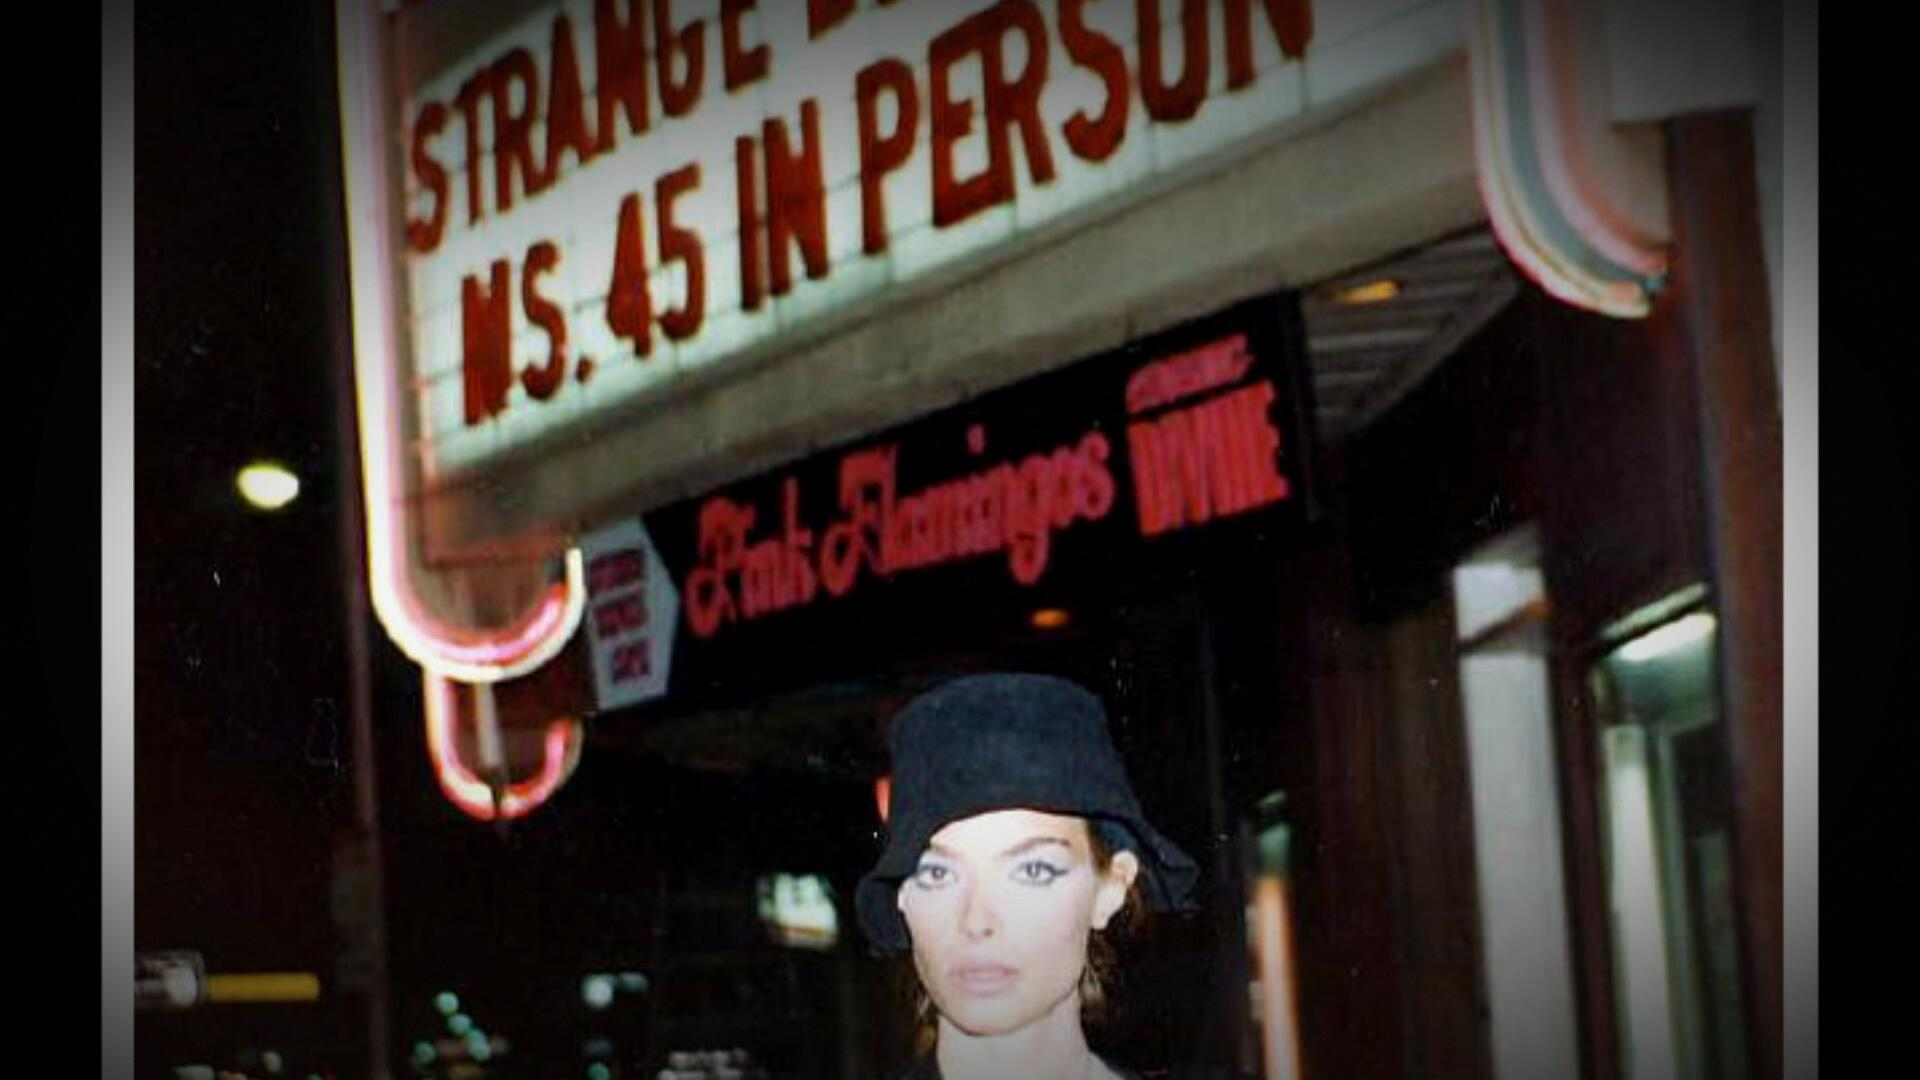 Showing a new installment of the Zoe Lund shorts series at Slamdance closing night ZOE RISING  2014 http://t.co/9RPJ1pEdYG